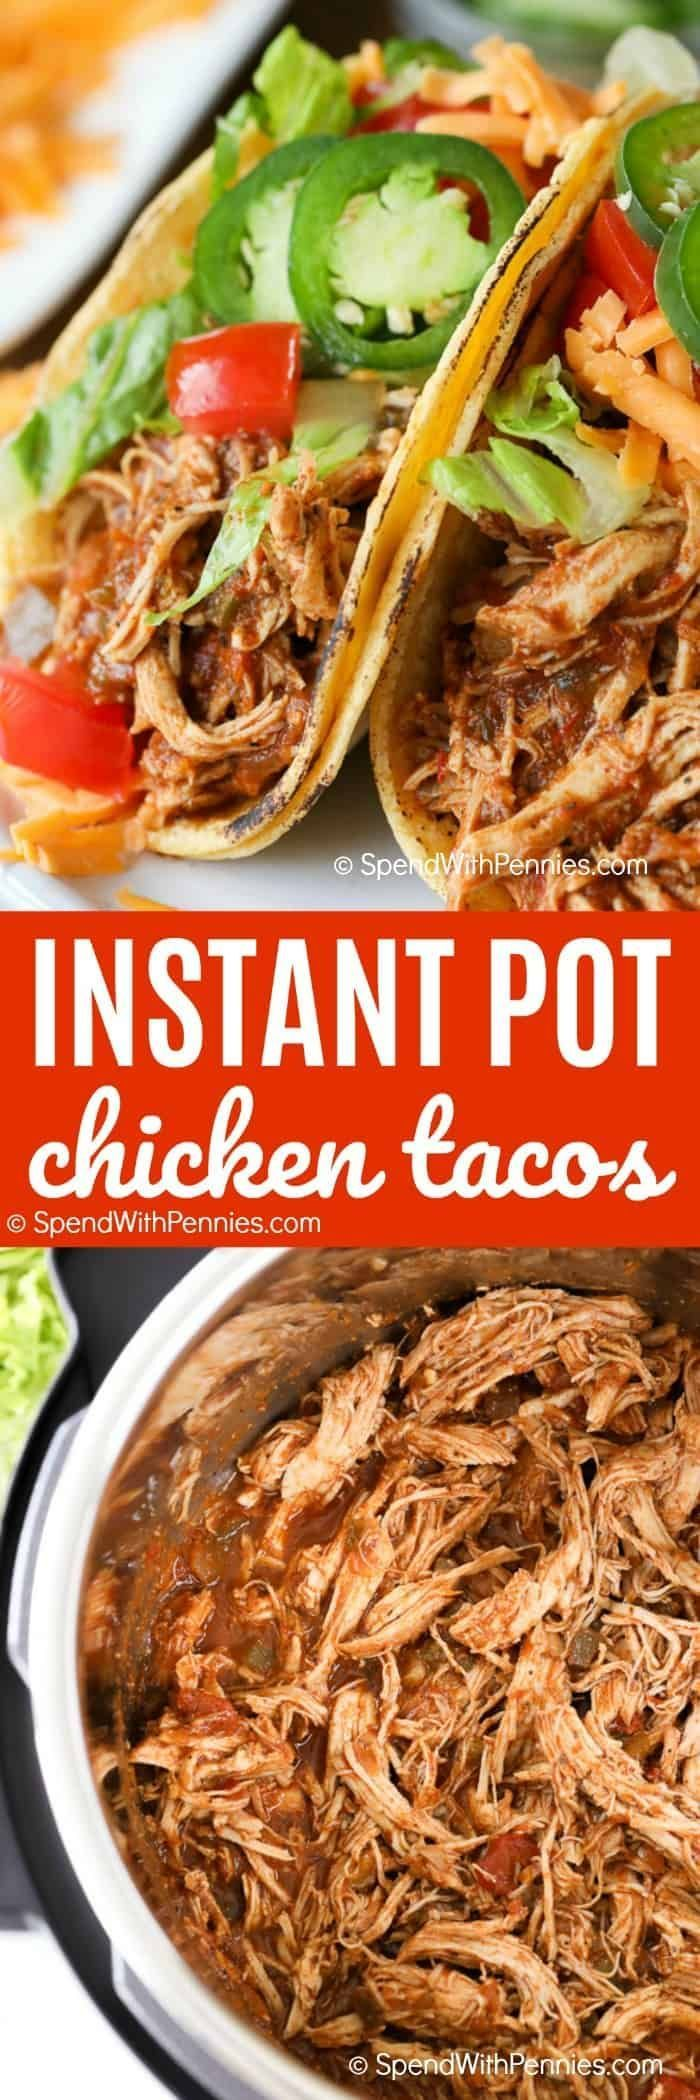 Instant Pot Chicken Tacos require 4 ingredients, that's all it takes to get st…